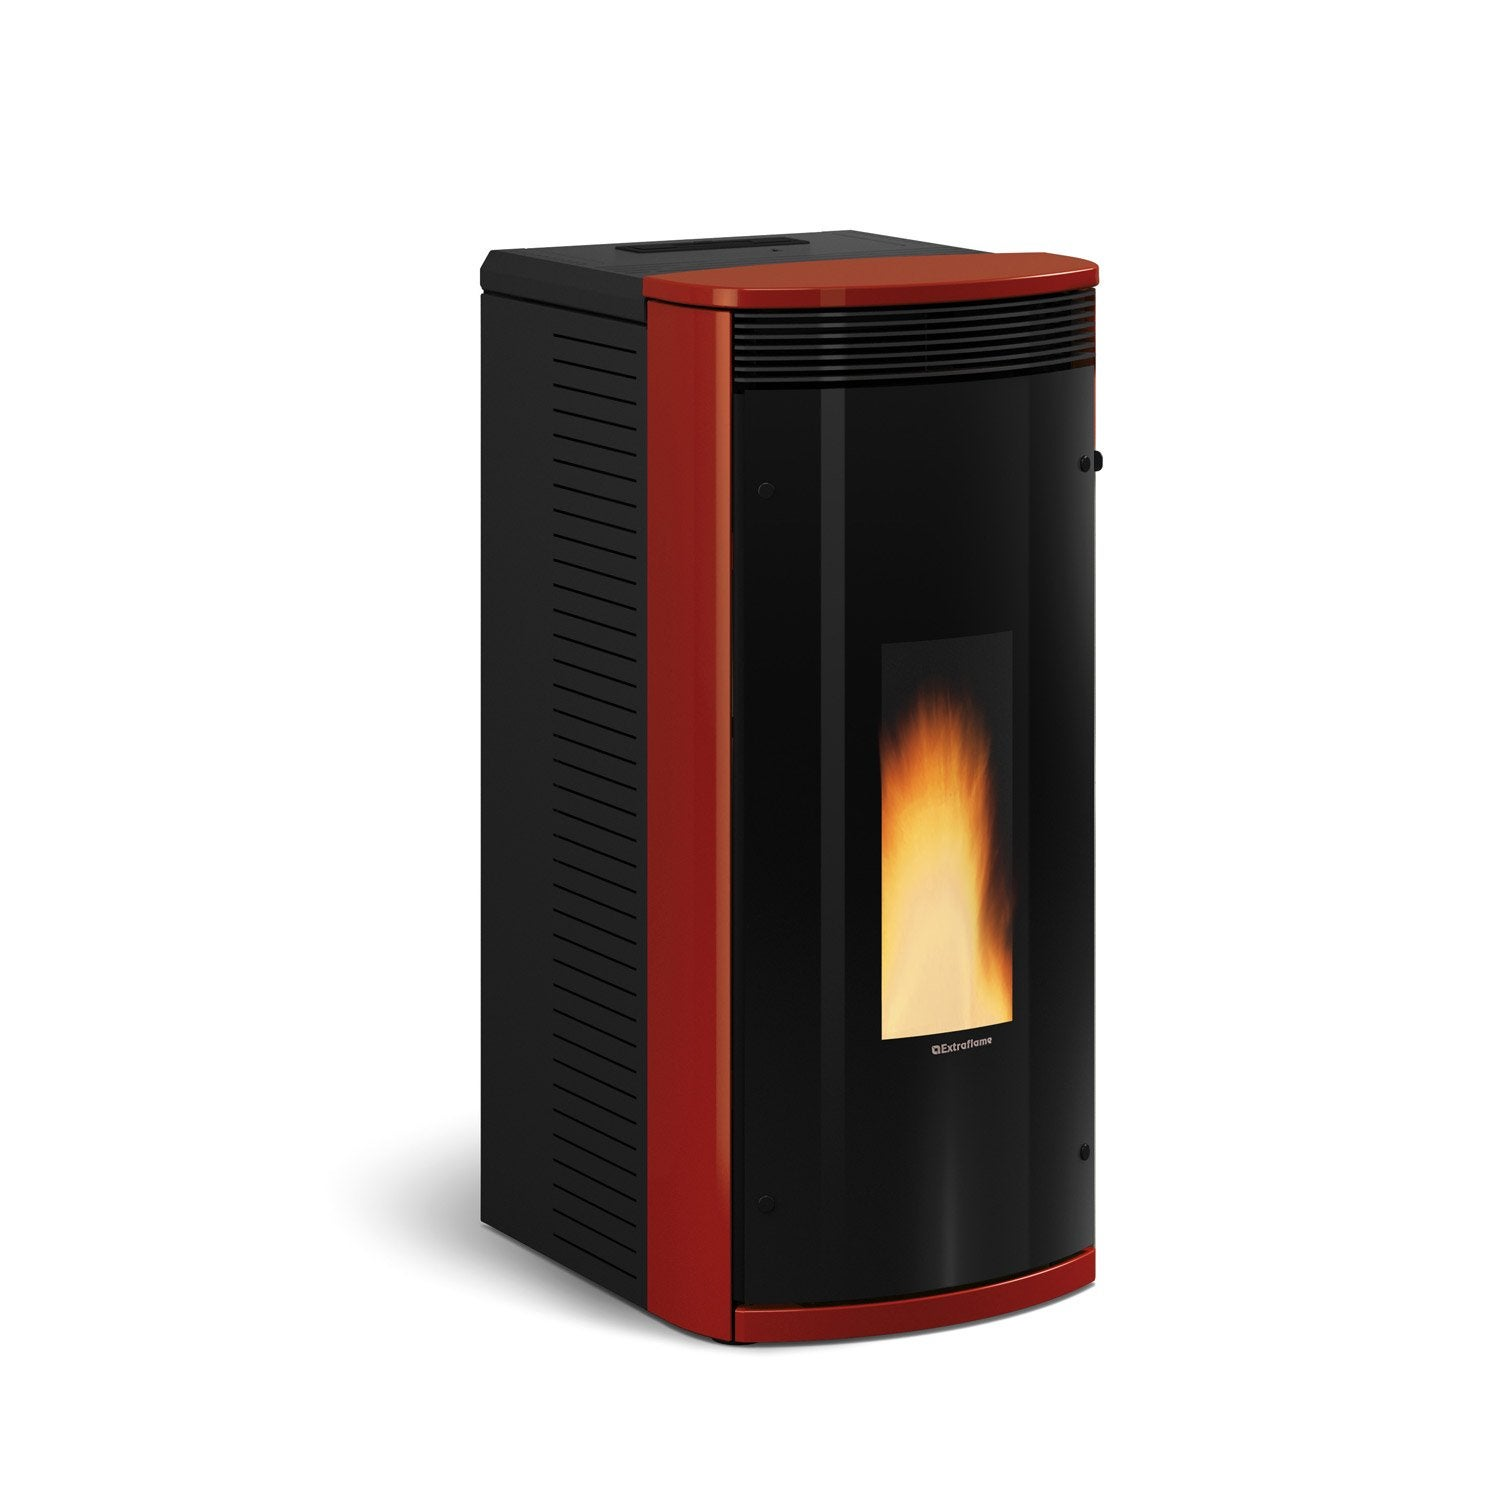 po le granul s extraflame sibilla plus bordeaux 8 2 kw leroy merlin. Black Bedroom Furniture Sets. Home Design Ideas